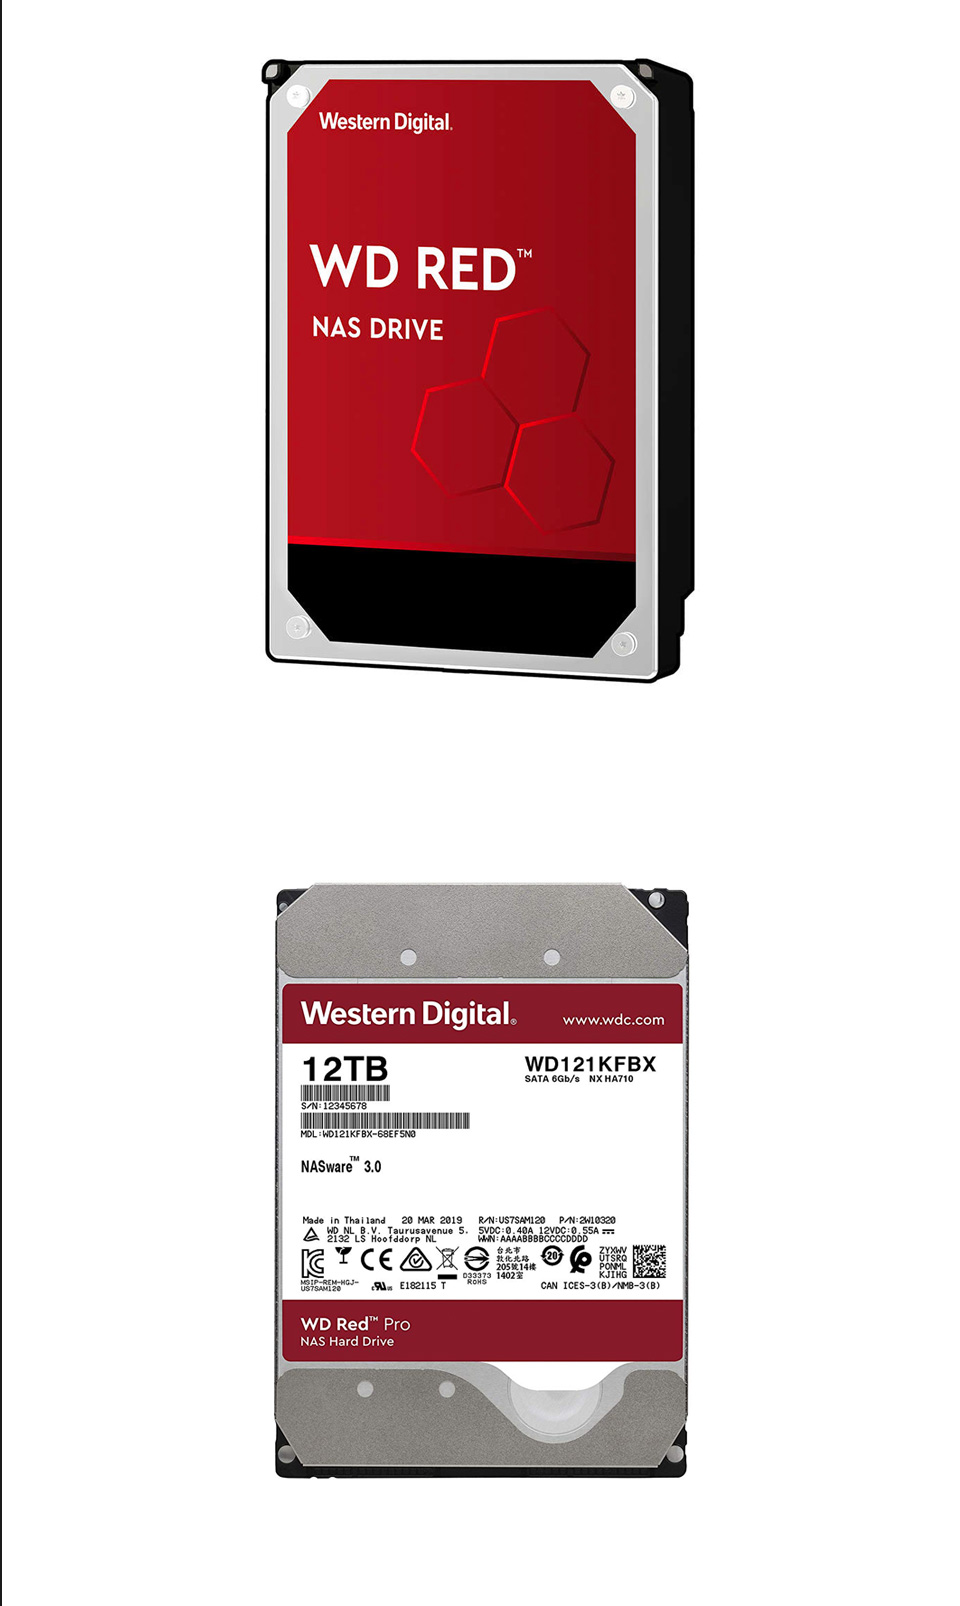 Western Digital WD Red Pro 12TB WD121KFBX 3.5in NAS Hard Drive product